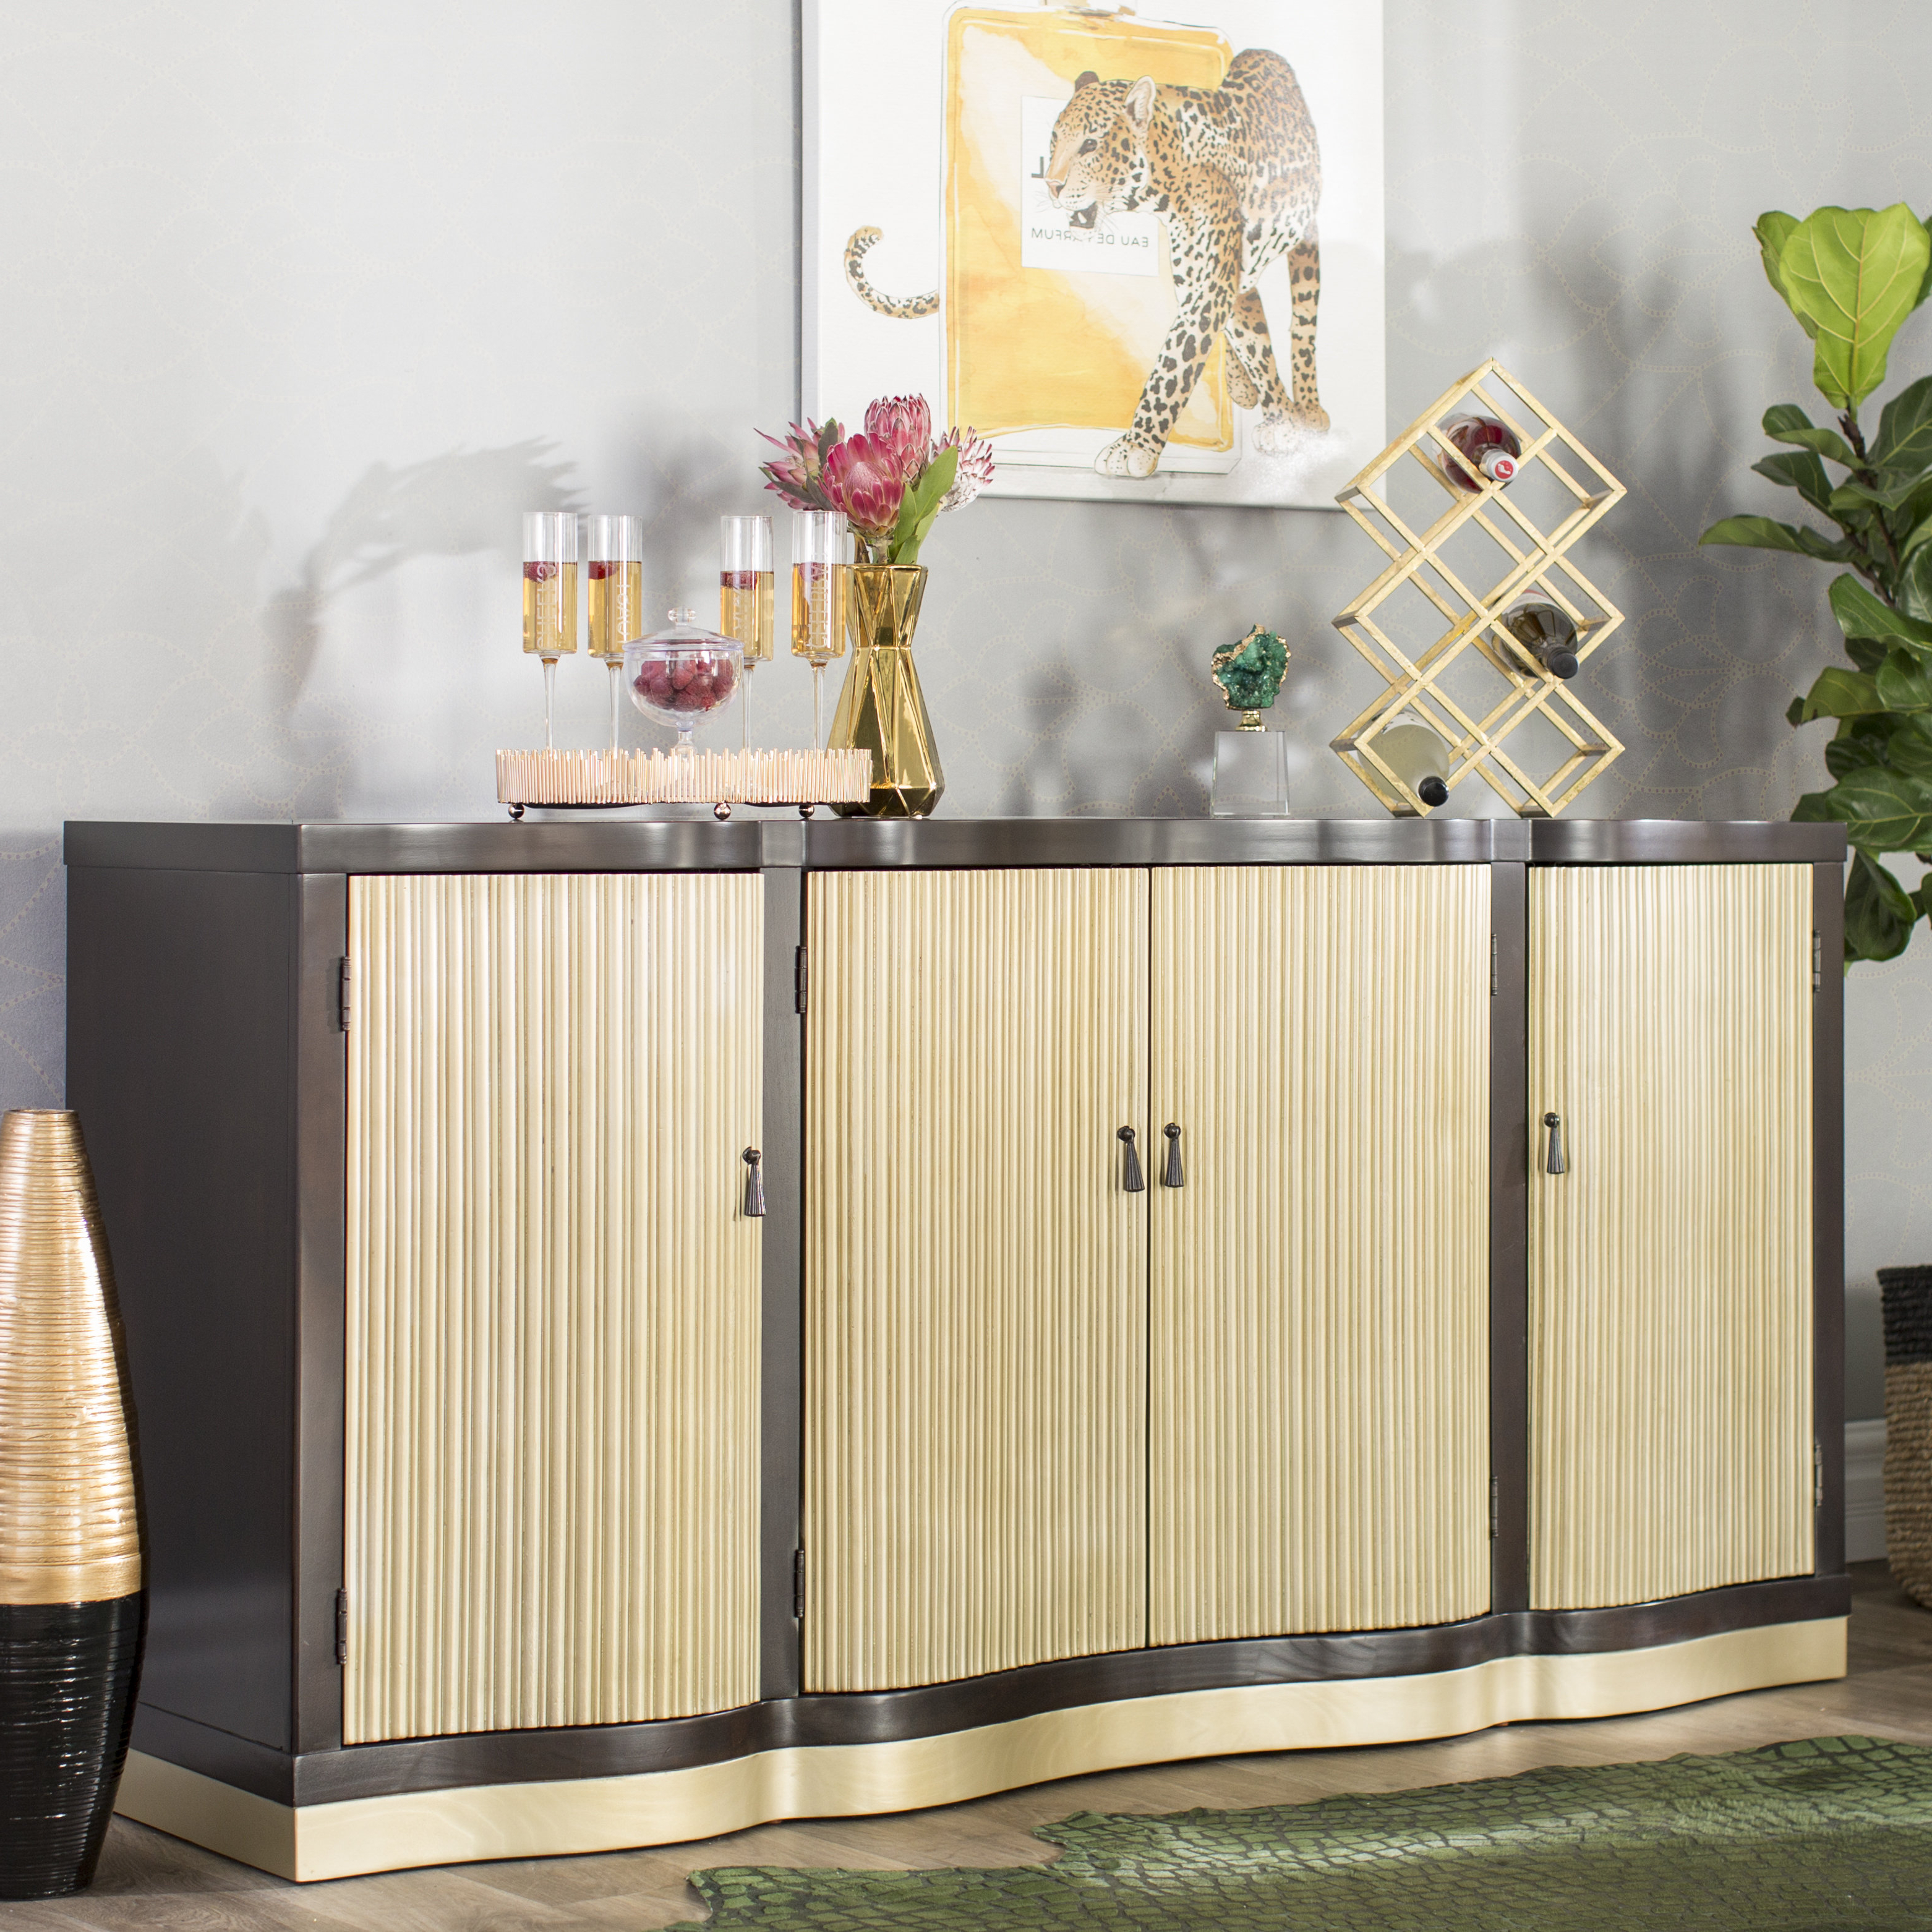 Choncey Sideboard Throughout Widely Used Wattisham Sideboards (Gallery 3 of 20)